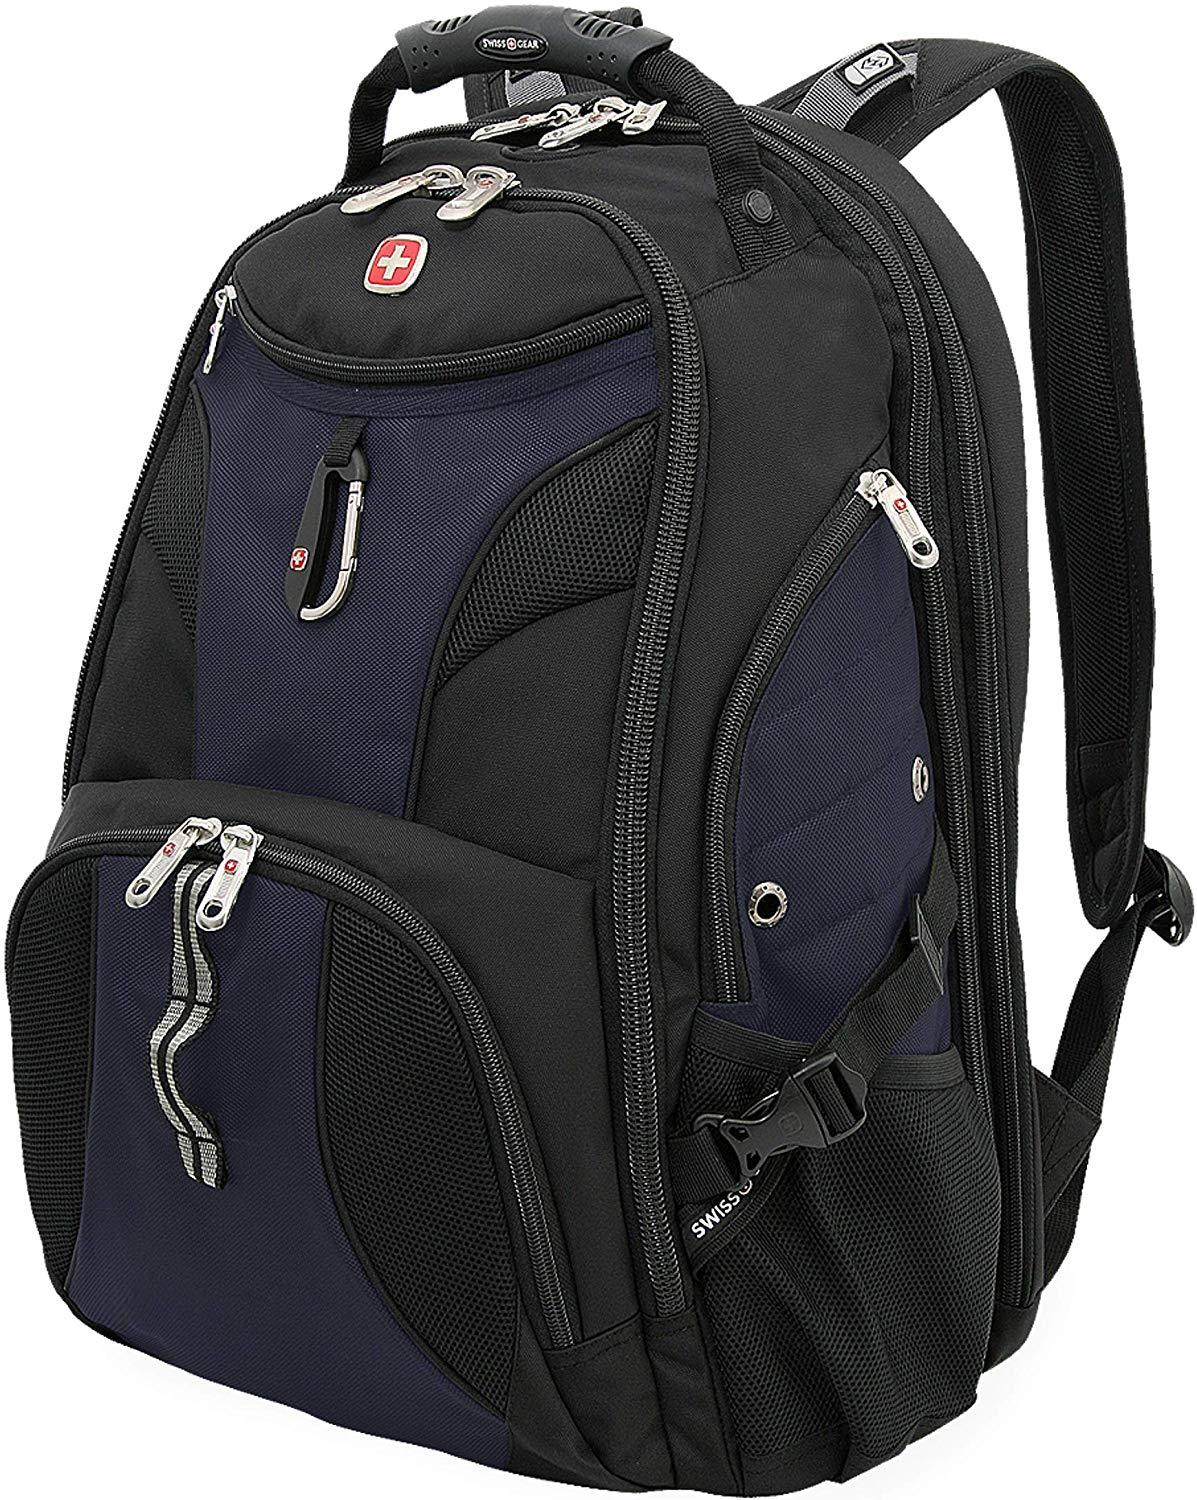 10 Backpack with a Laptop Compartment Suitable for Traveling 8